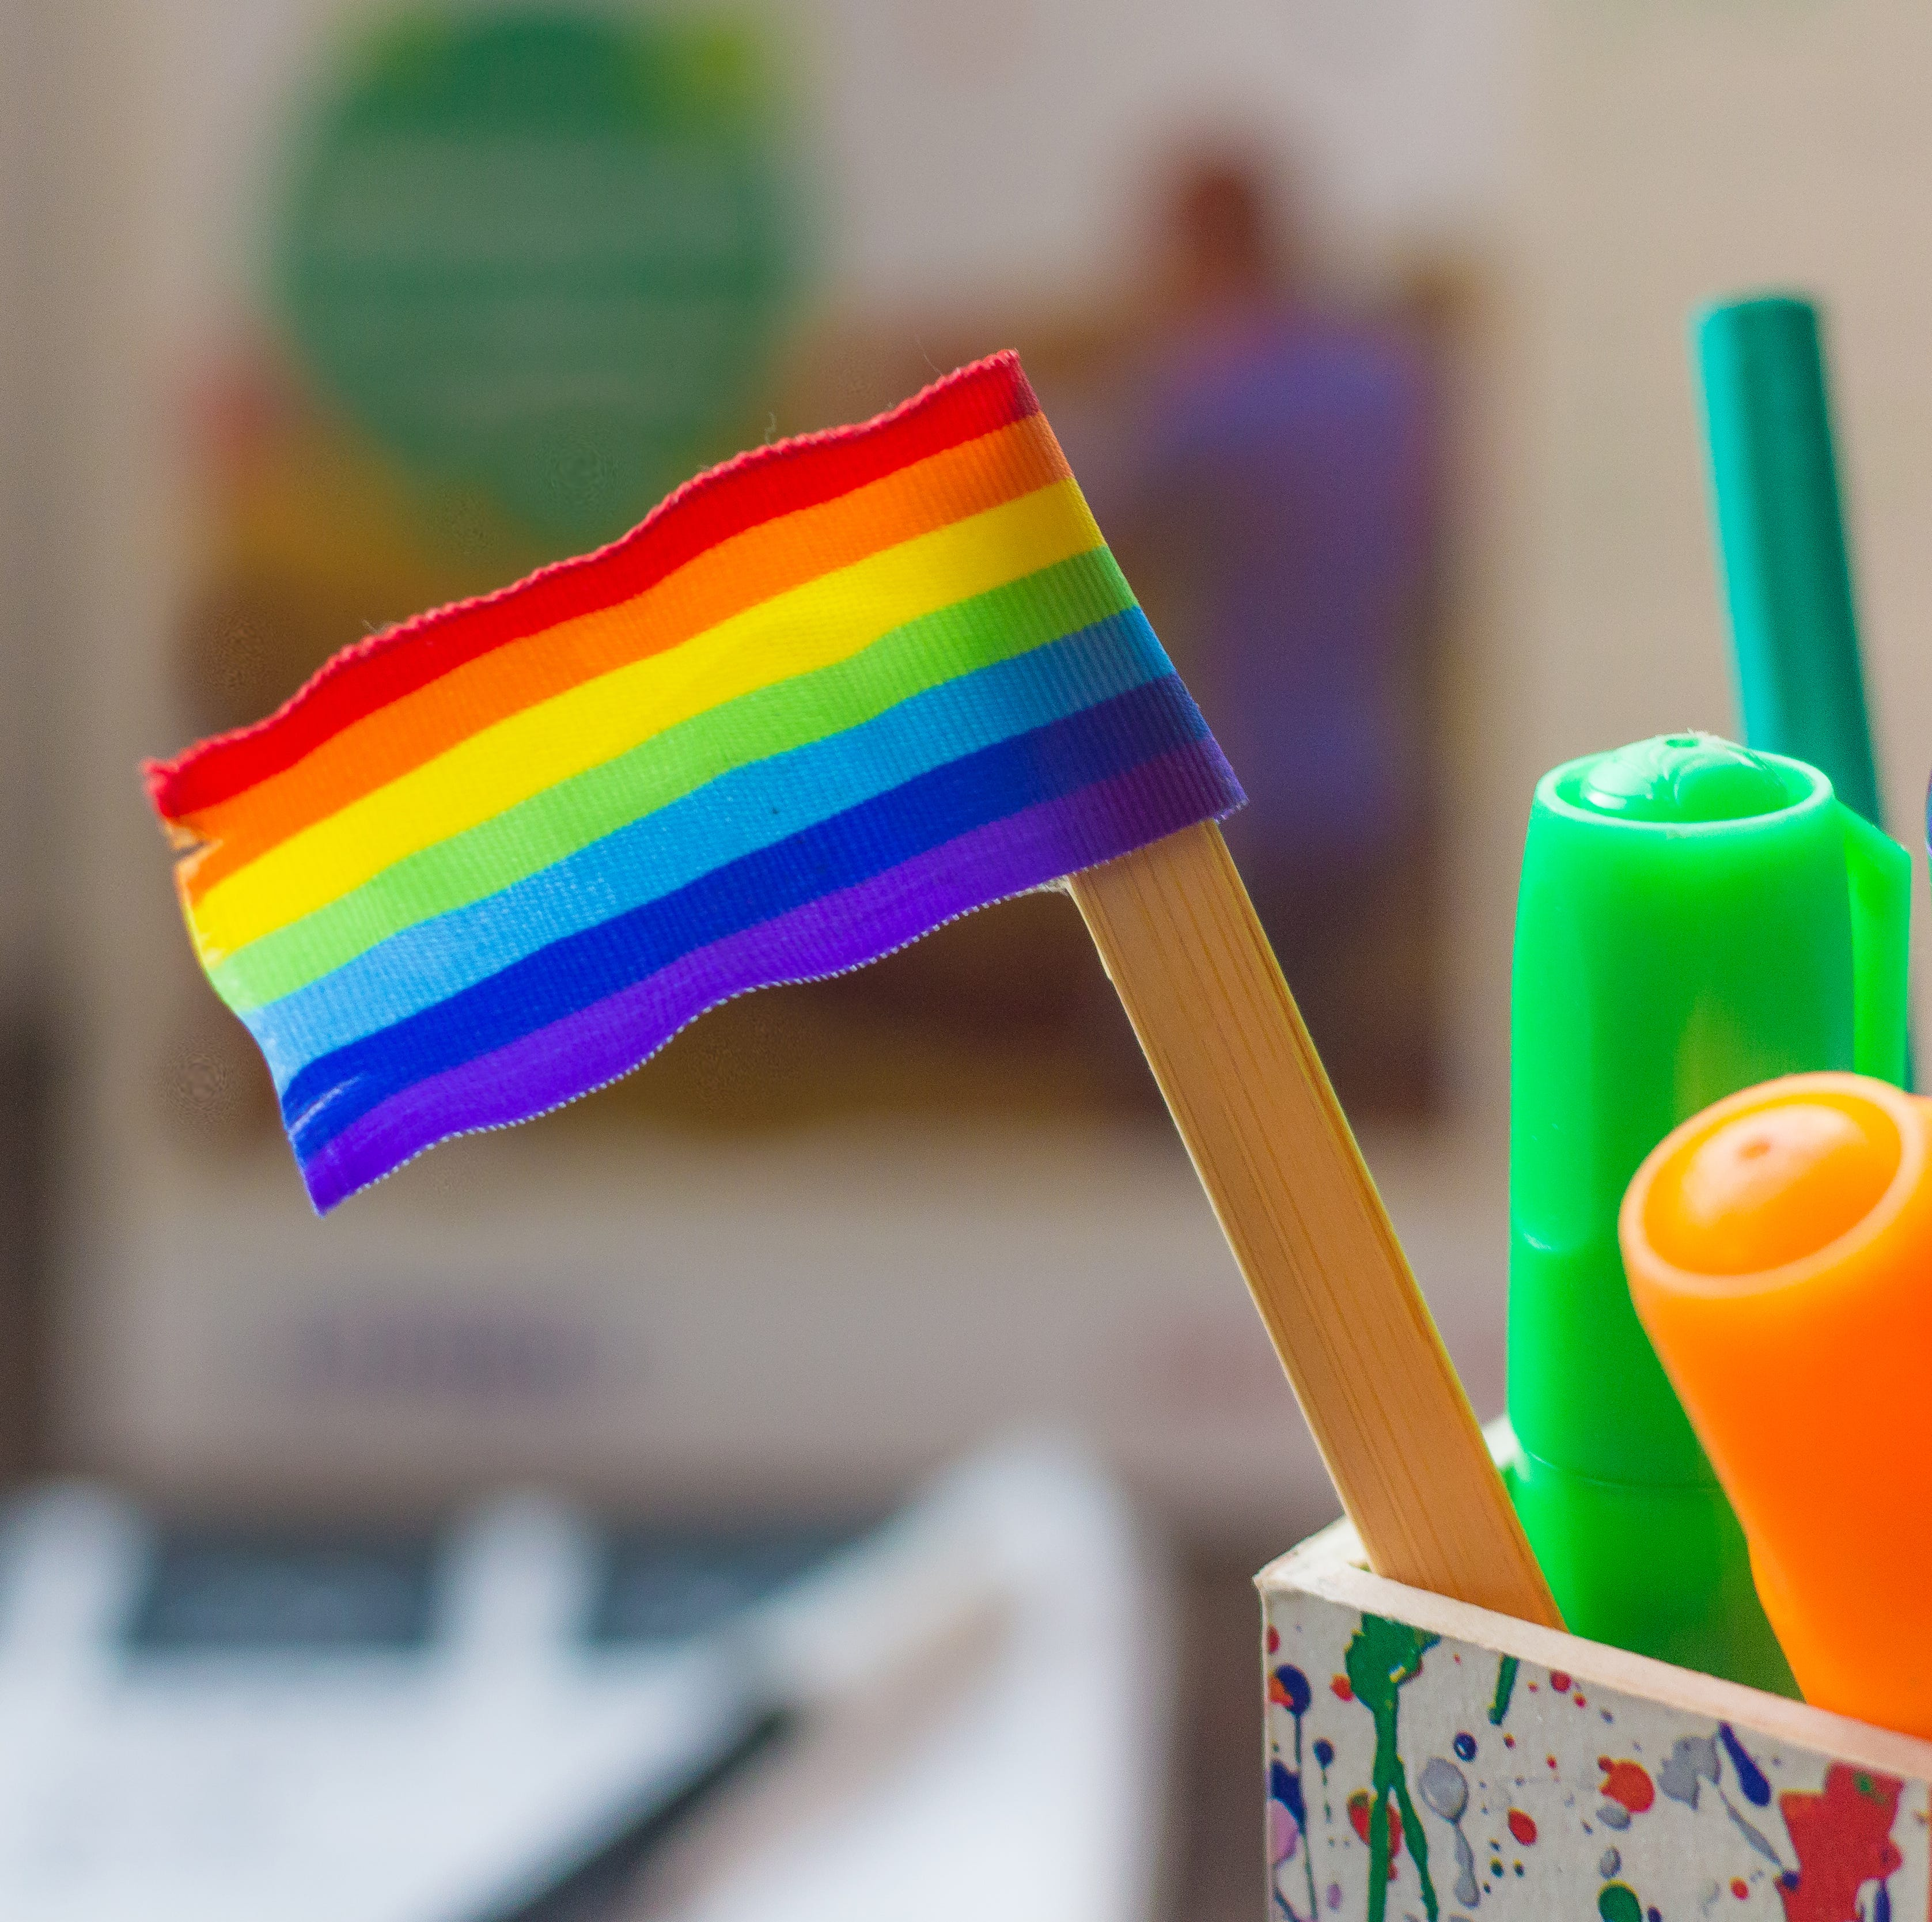 New LGBTQ curriculum mandate reflects political agenda